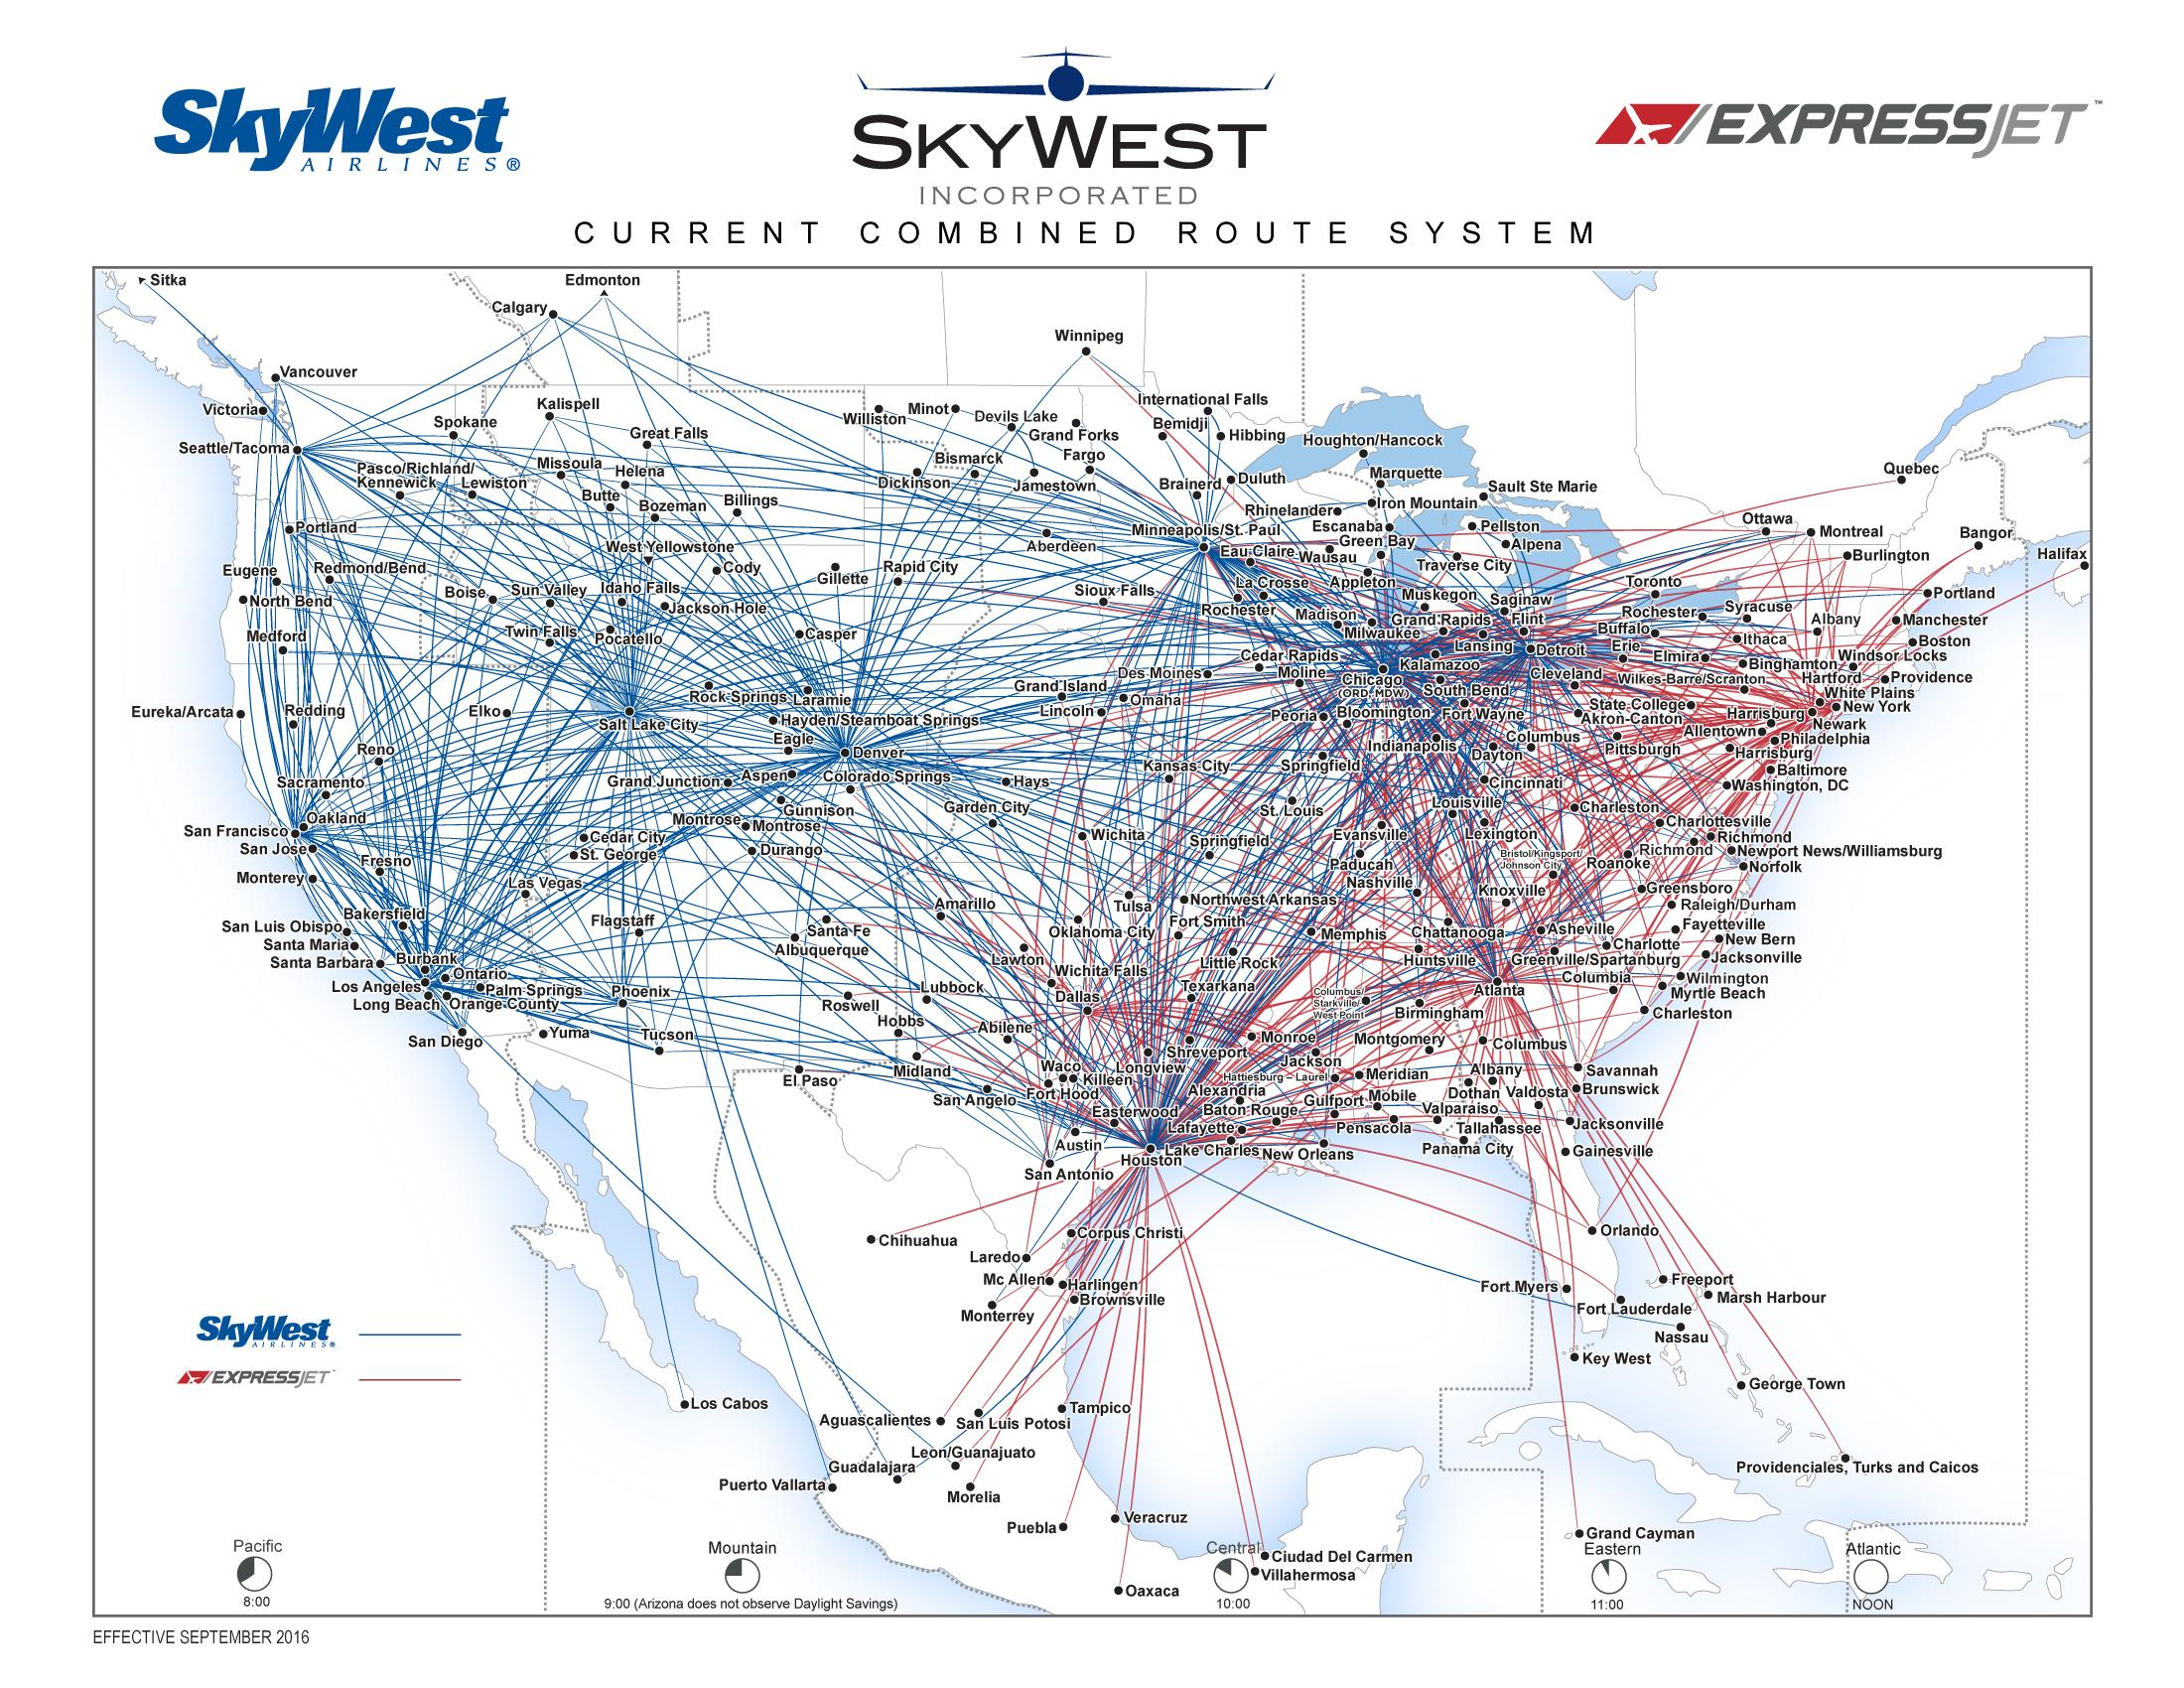 Tower To SkyWest: Descend And Maintain A Lower Alude ... on american route map, airtran airlines route map, pacific wings route map, air macau route map, national airlines route map, delta air lines route map, jetblue airlines route map, delta international route map, frontier airlines route map, key lime air route map, expressjet route map, atlas air route map, volaris route map, independence air route map, trans states airlines route map, island air route map, tap air portugal route map, luxair route map, united route map,